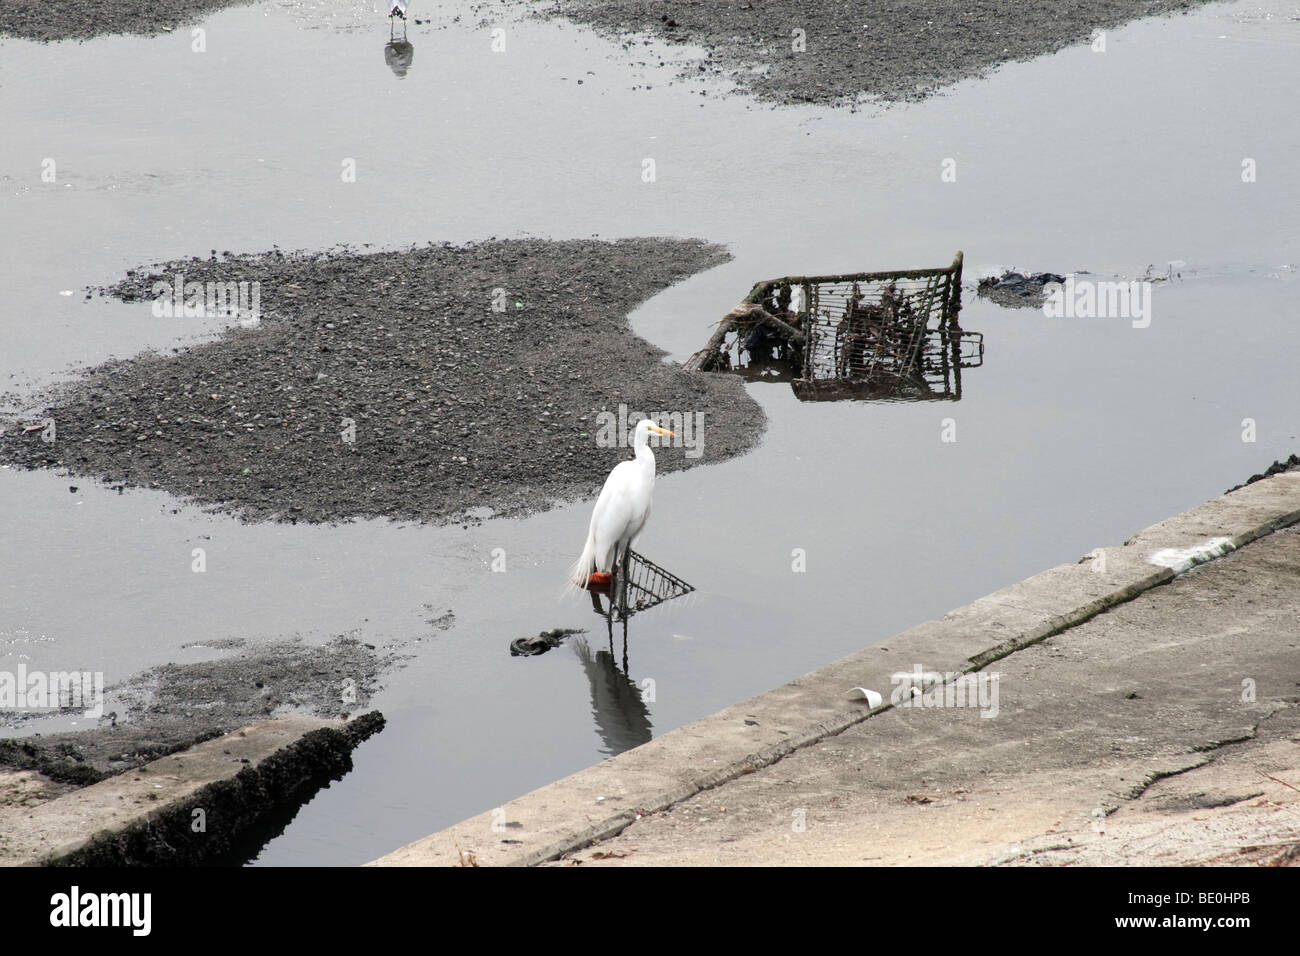 Snowy Egret in Ballona Creek with Shopping cart, Los Angeles, California, USA - Stock Image